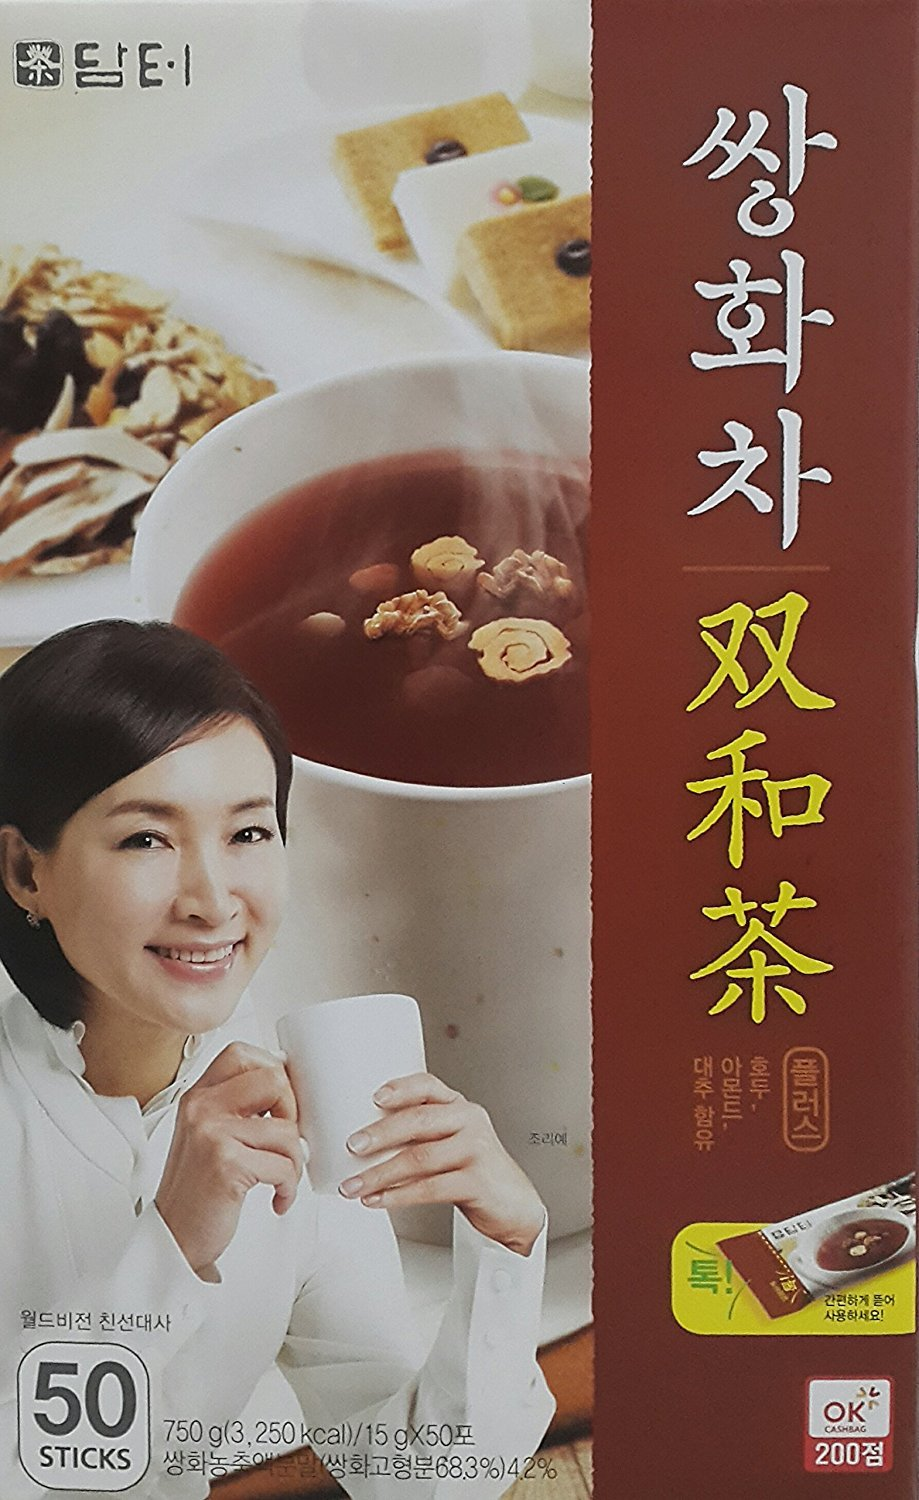 (Tea Collection) Herbal Supplement Healthy Tonic Tea (Ssanghwa Tea(Herbal Tonic) Plus 15g x 50 sticks) by Damtuh